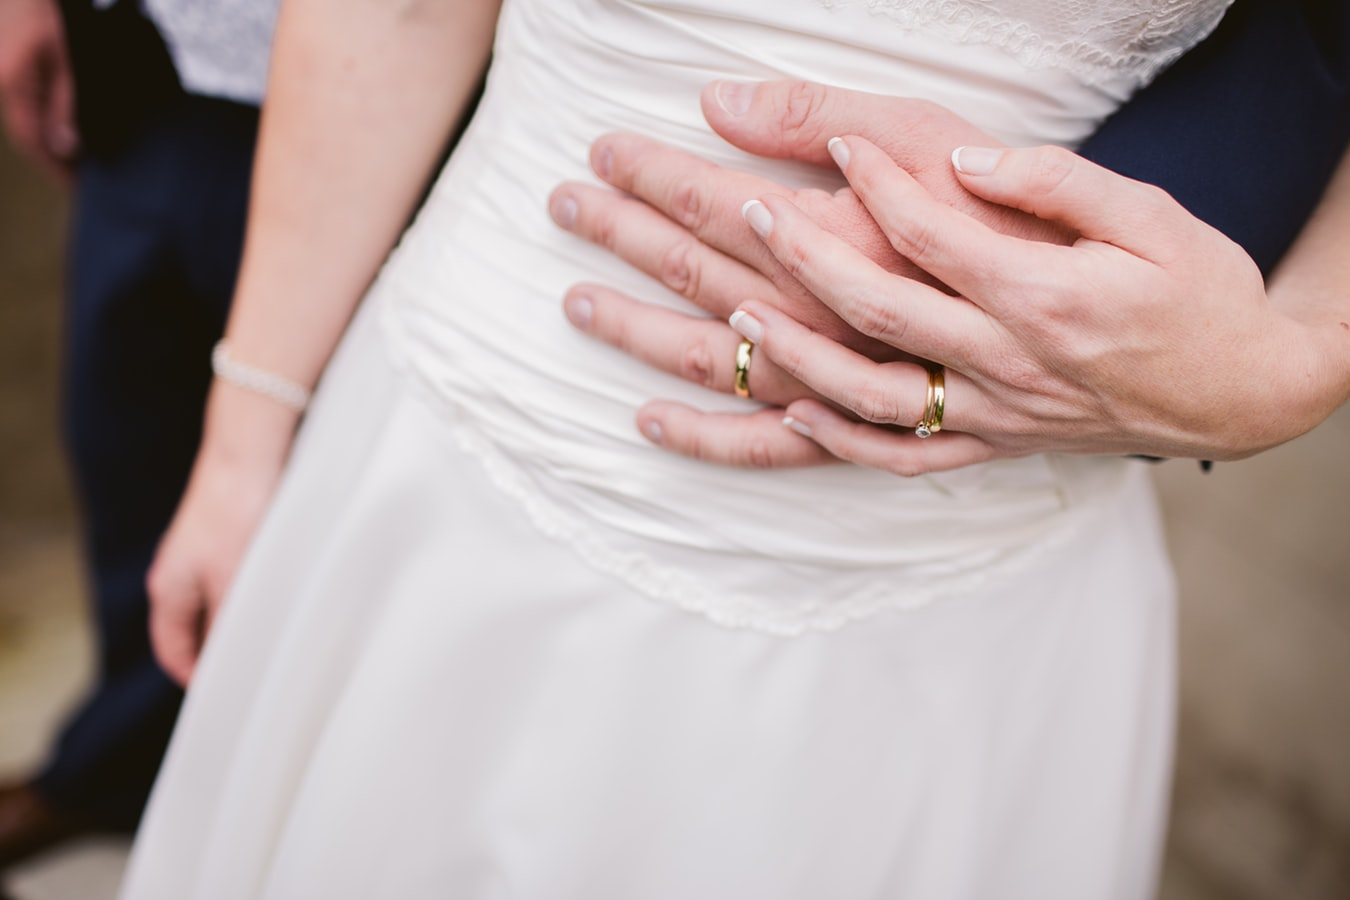 Couple wearing wedding ring holding hand